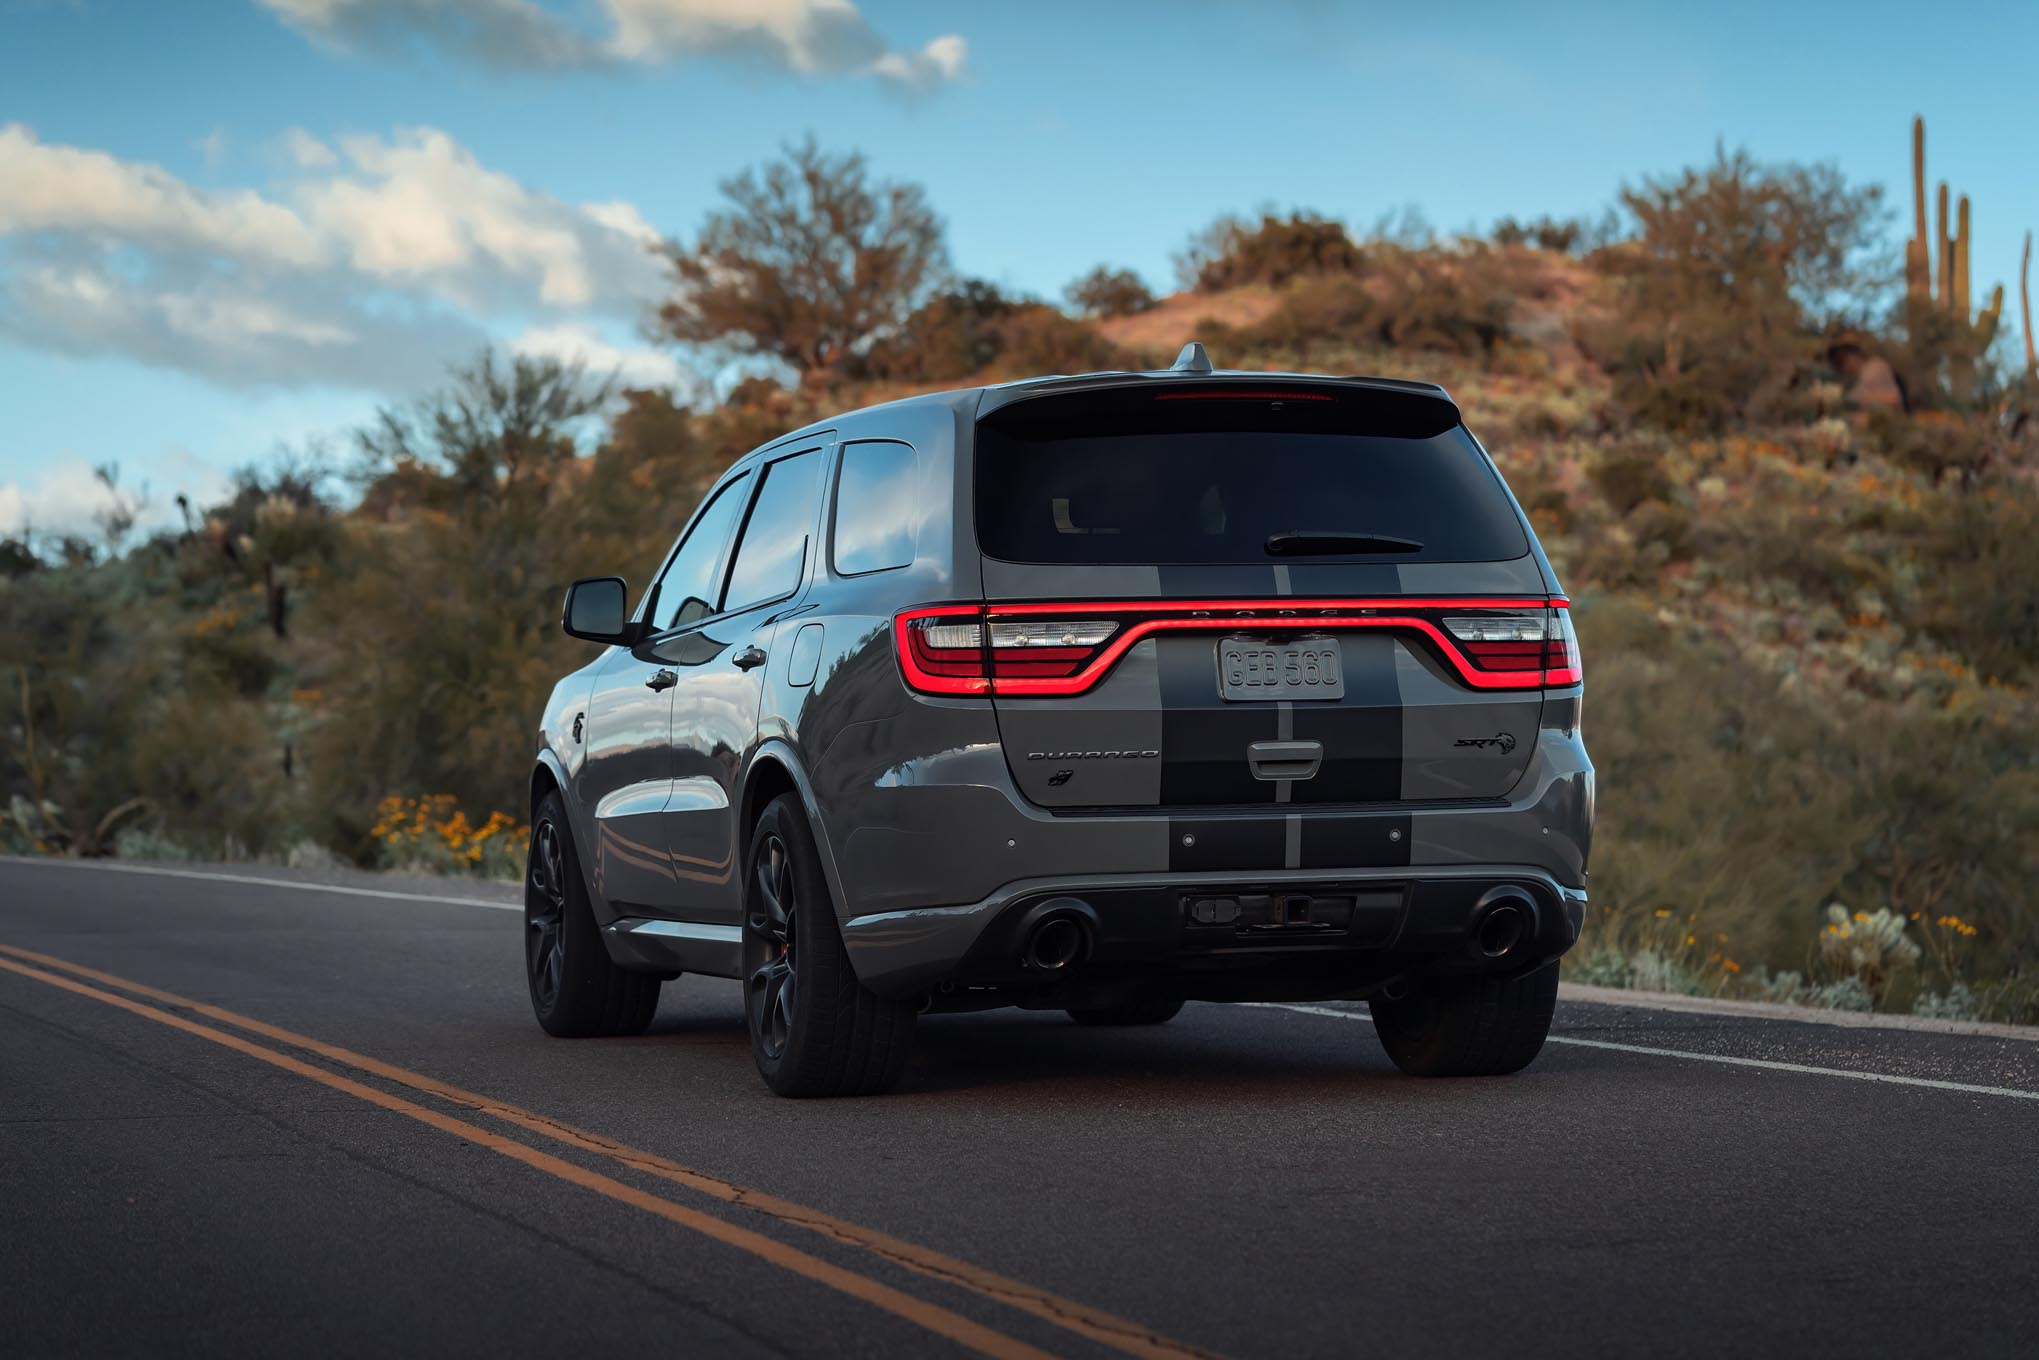 2021 Dodge Durango Hellcat Most Powerful Suv